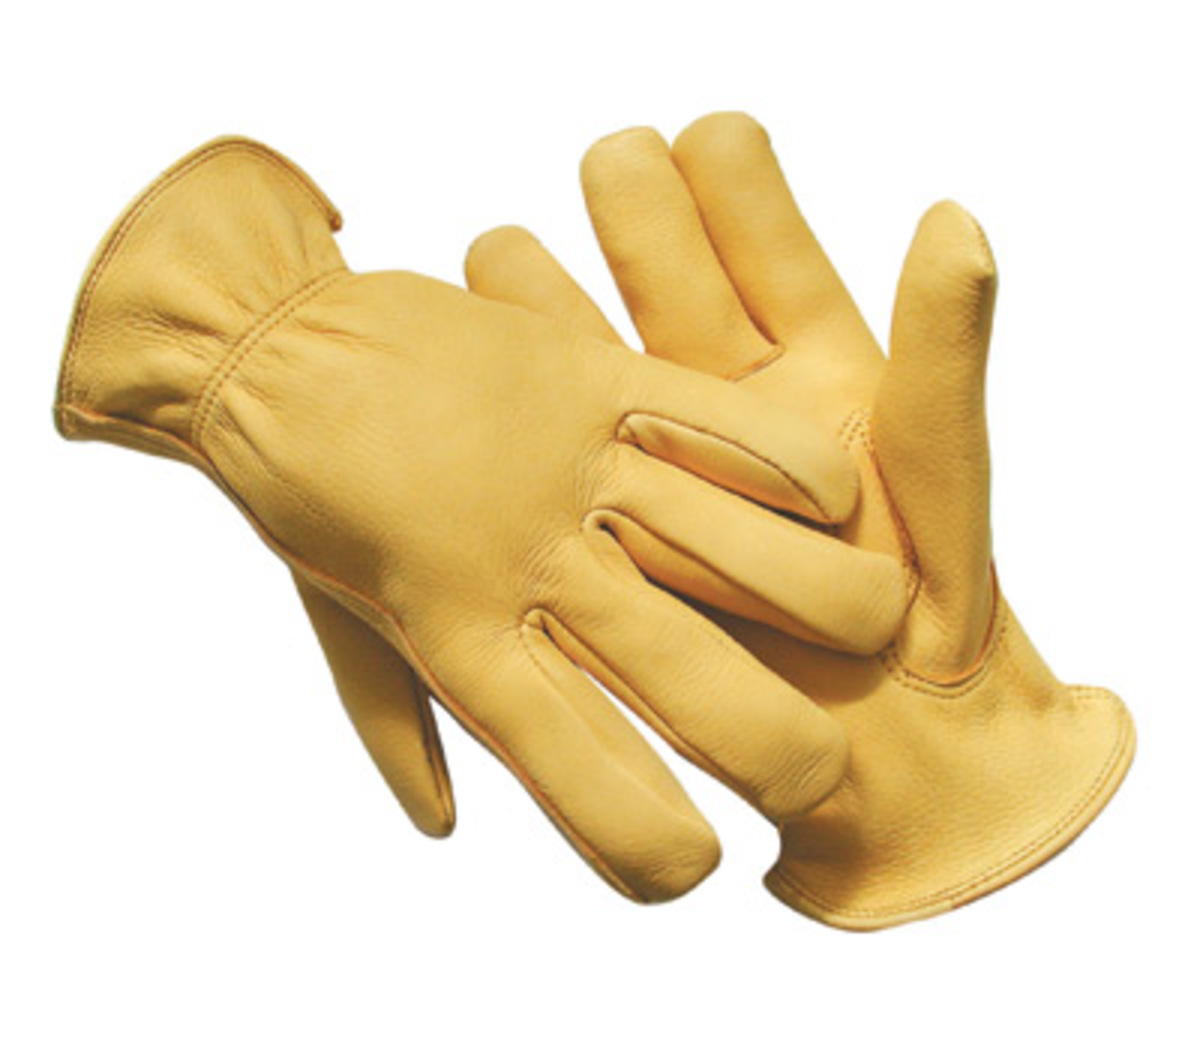 Driving gloves unlined - Radnor Large Premium Grain Deerskin Unlined Drivers Gloves With Keystone Thumb Slip On